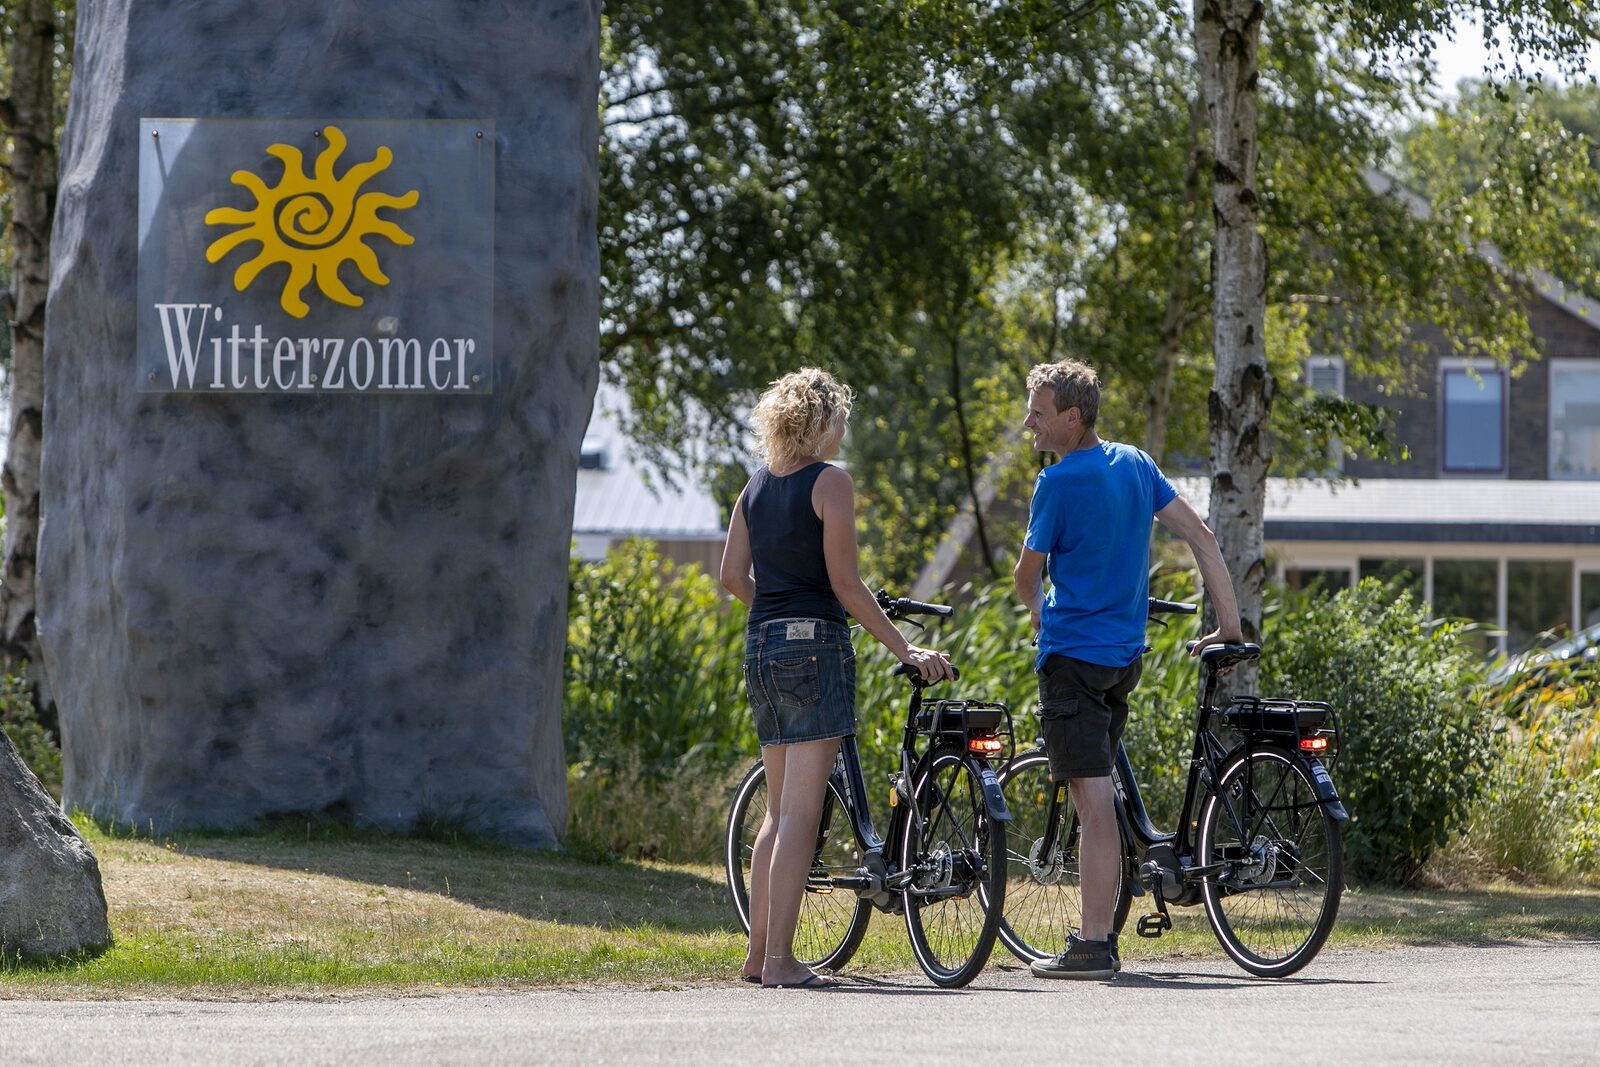 Bicycle and kart rental services Holiday Park Witterzomer